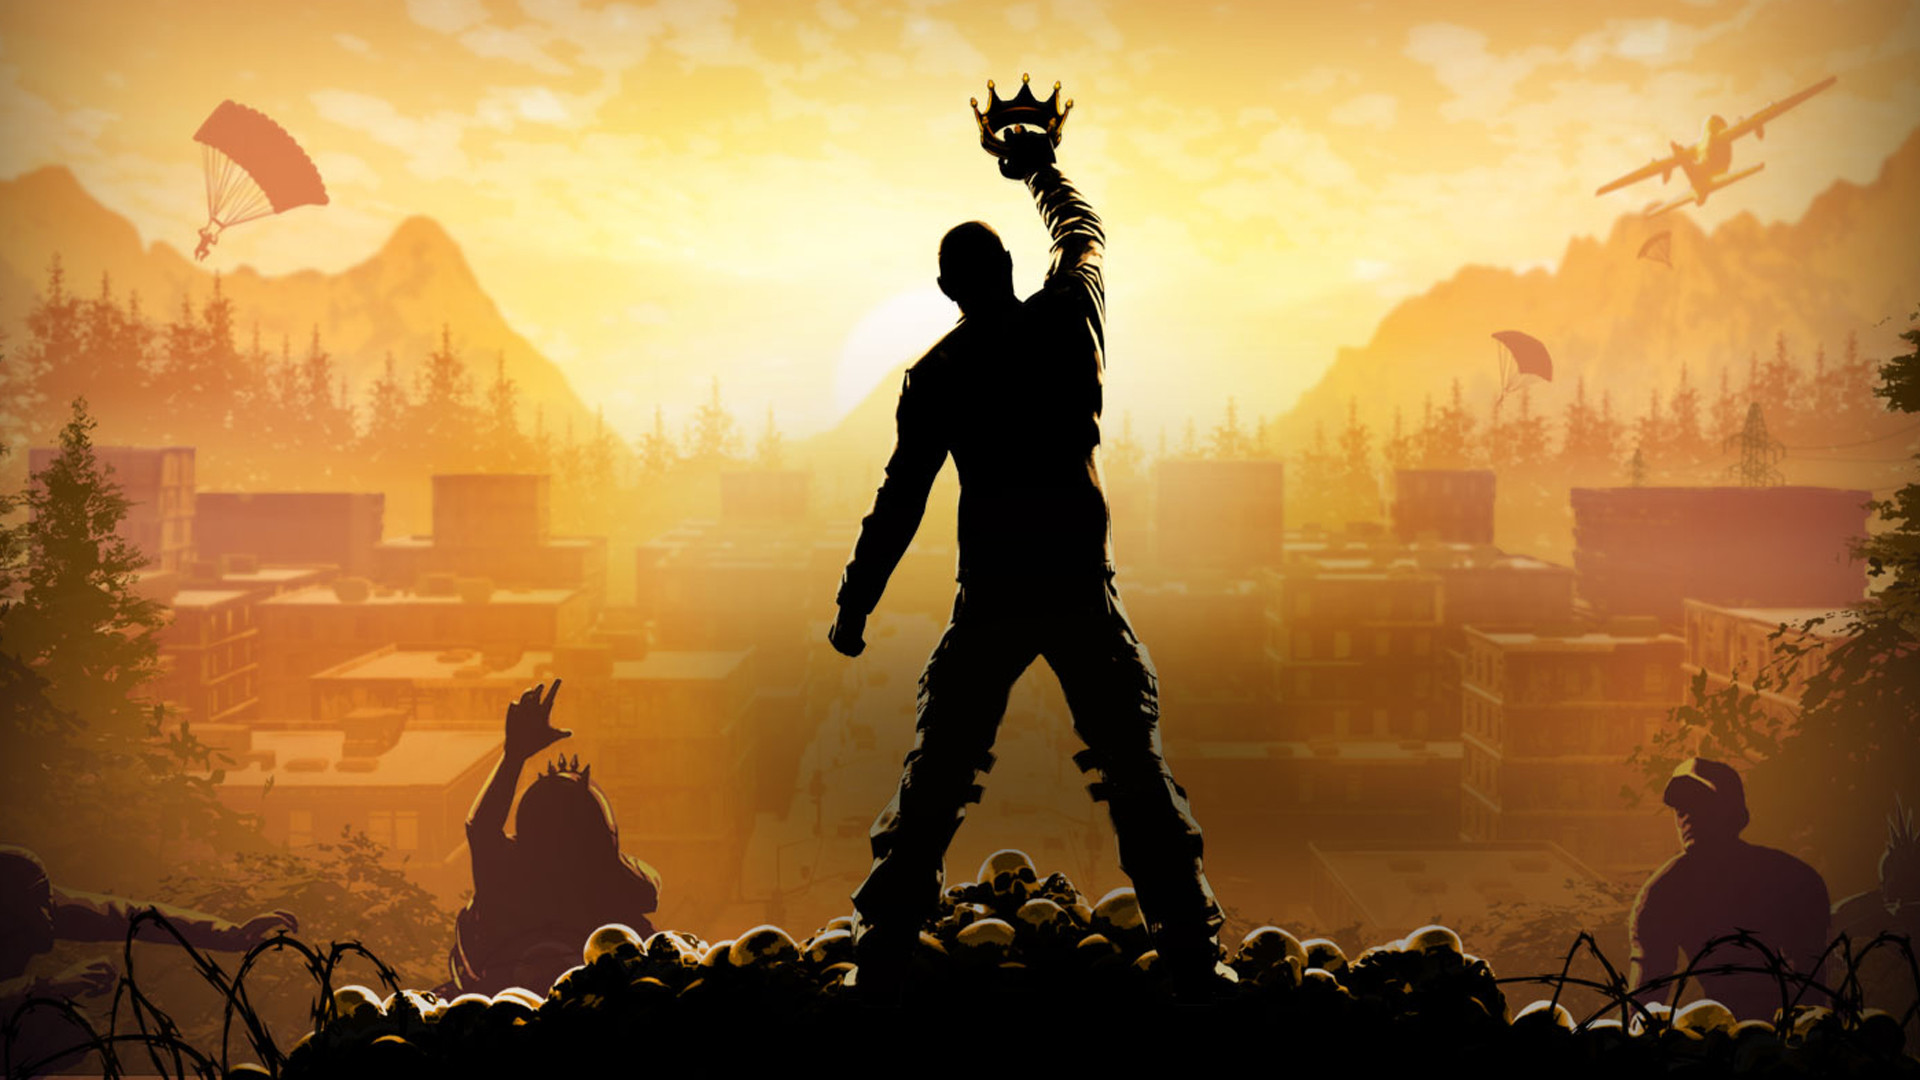 H1z1 king of the kill wallpapers 93 images - King wallpaper ...